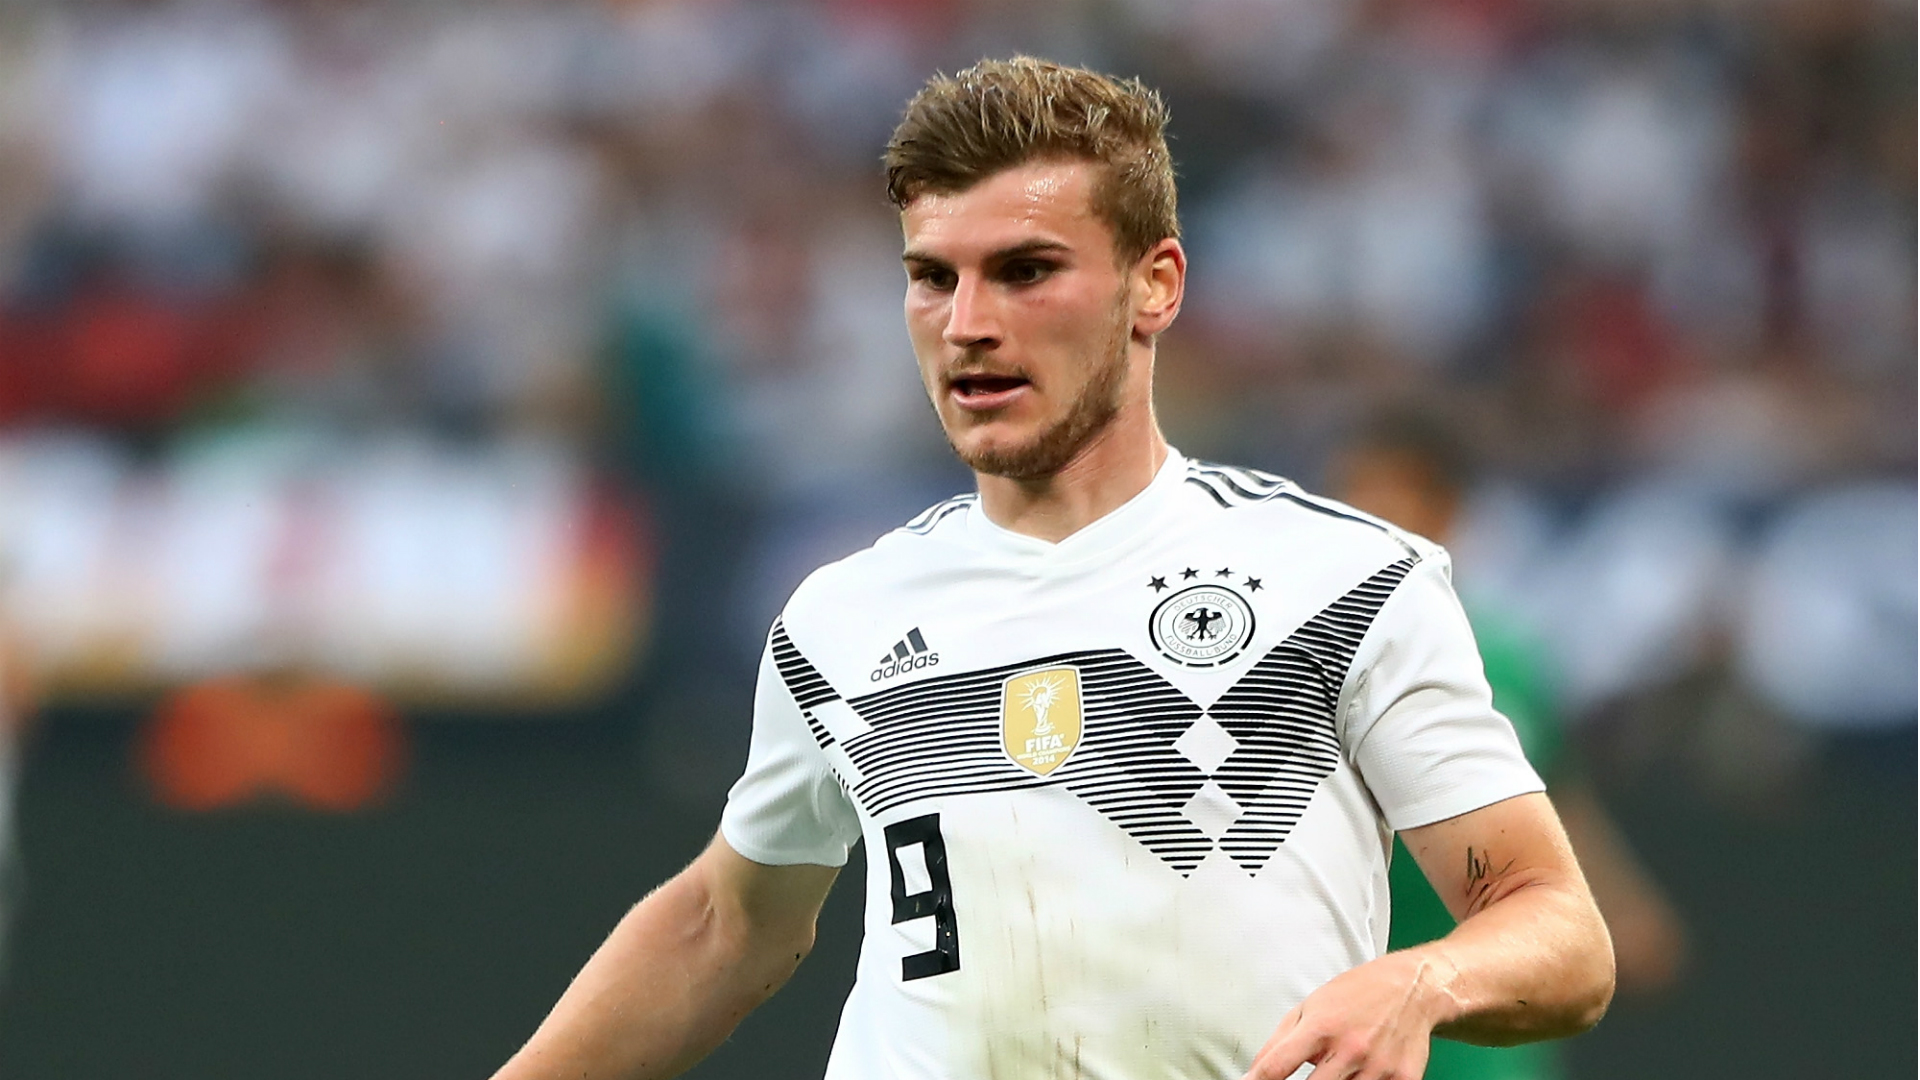 Maillot Extérieur RB Leipzig Timo Werner